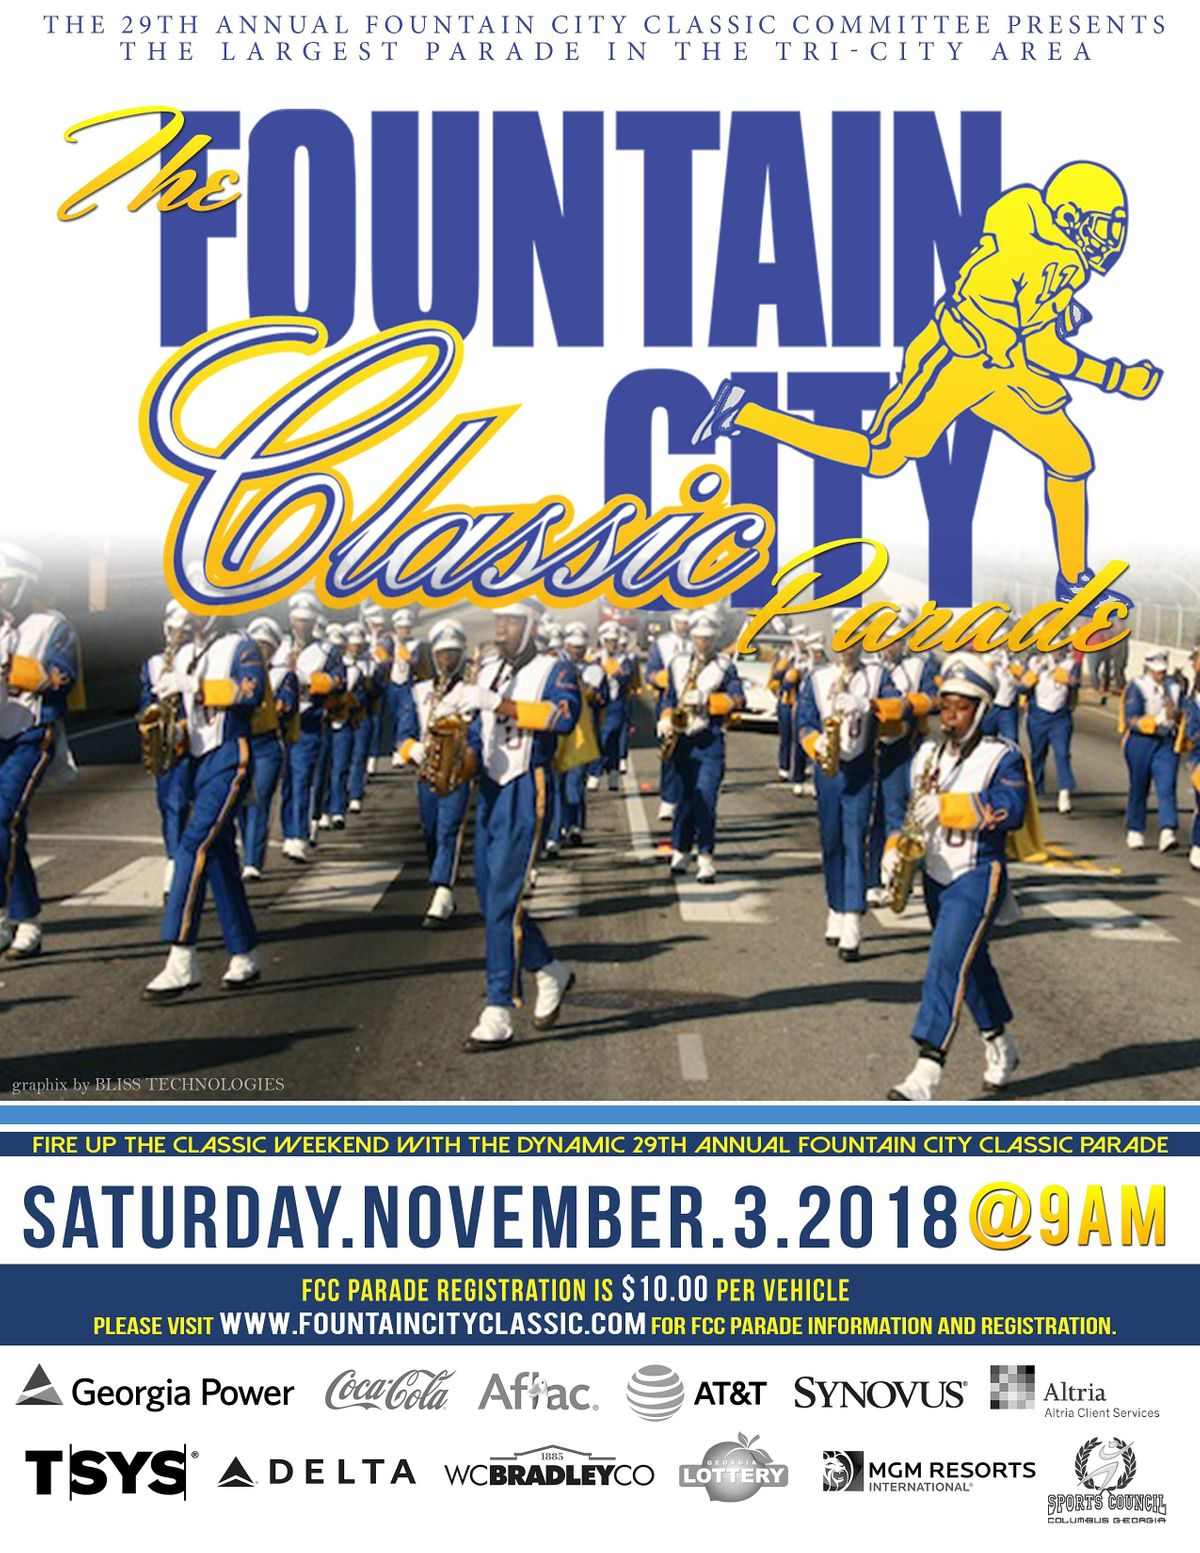 31st Annual Fountain City Classic Parade